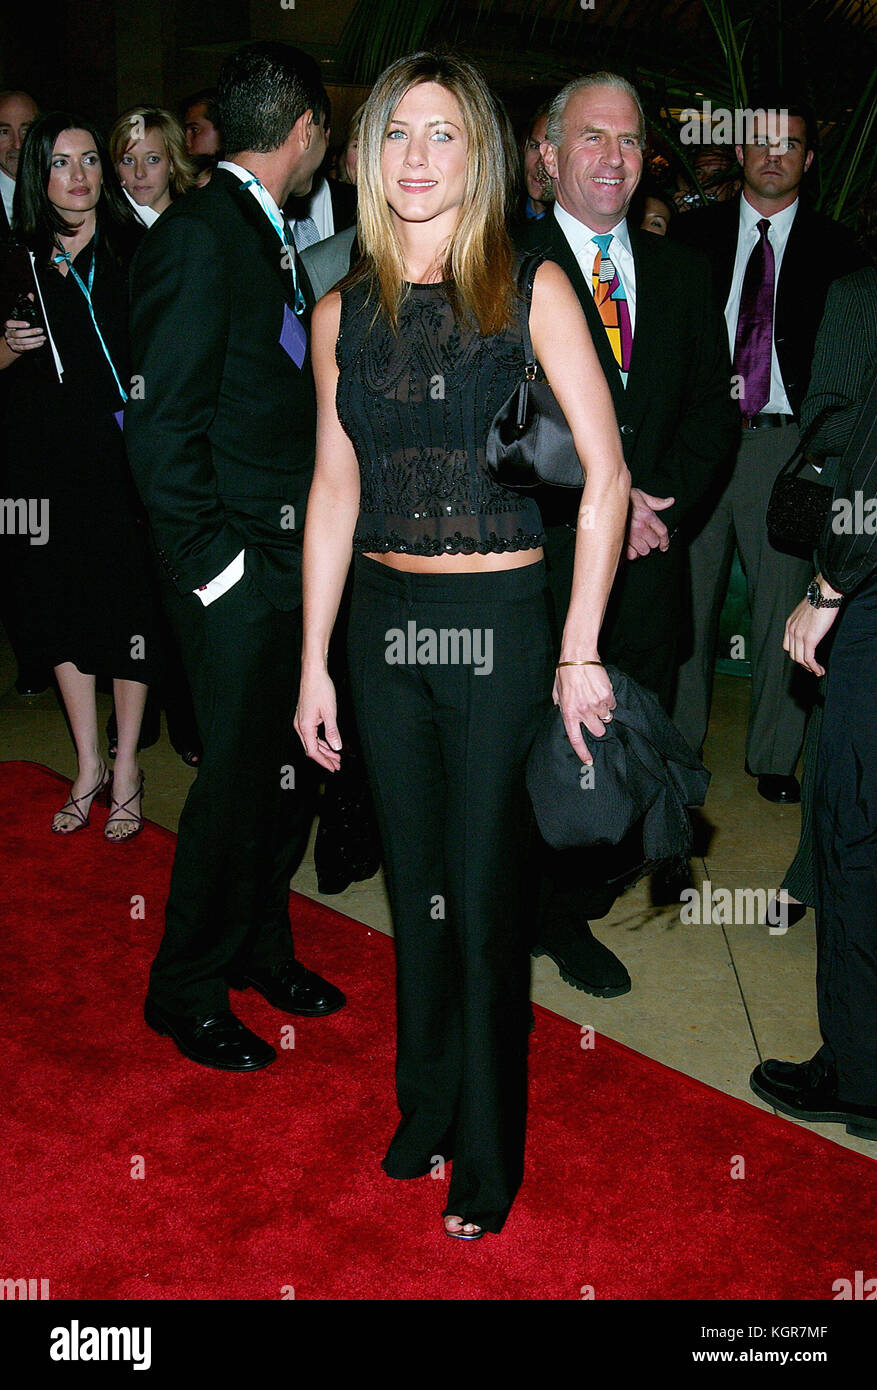 Jennifer Aniston arriving at the 5th Annual Lili Claire